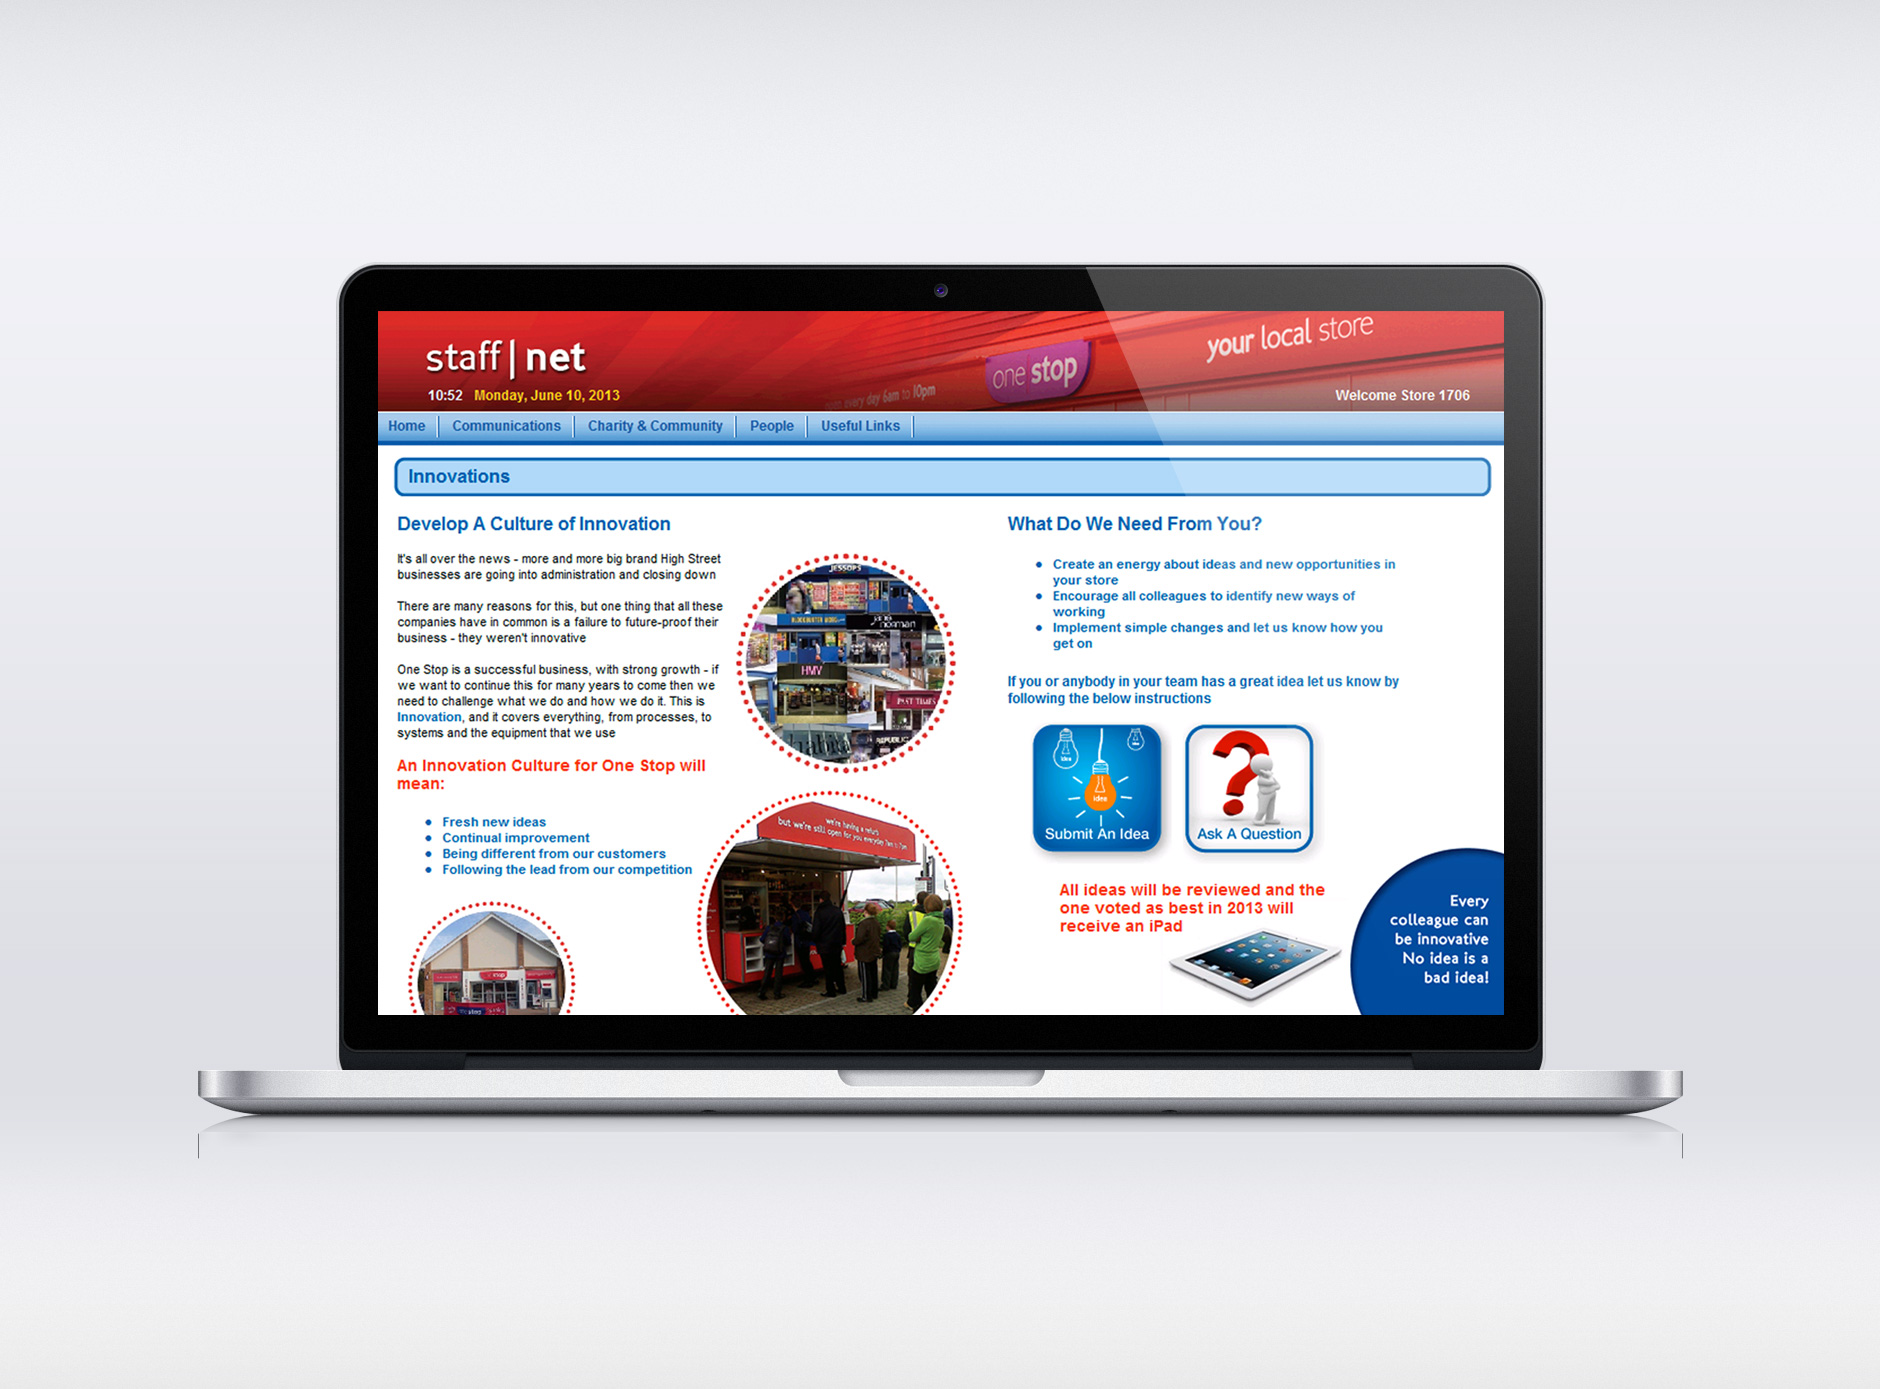 One Stop intranet